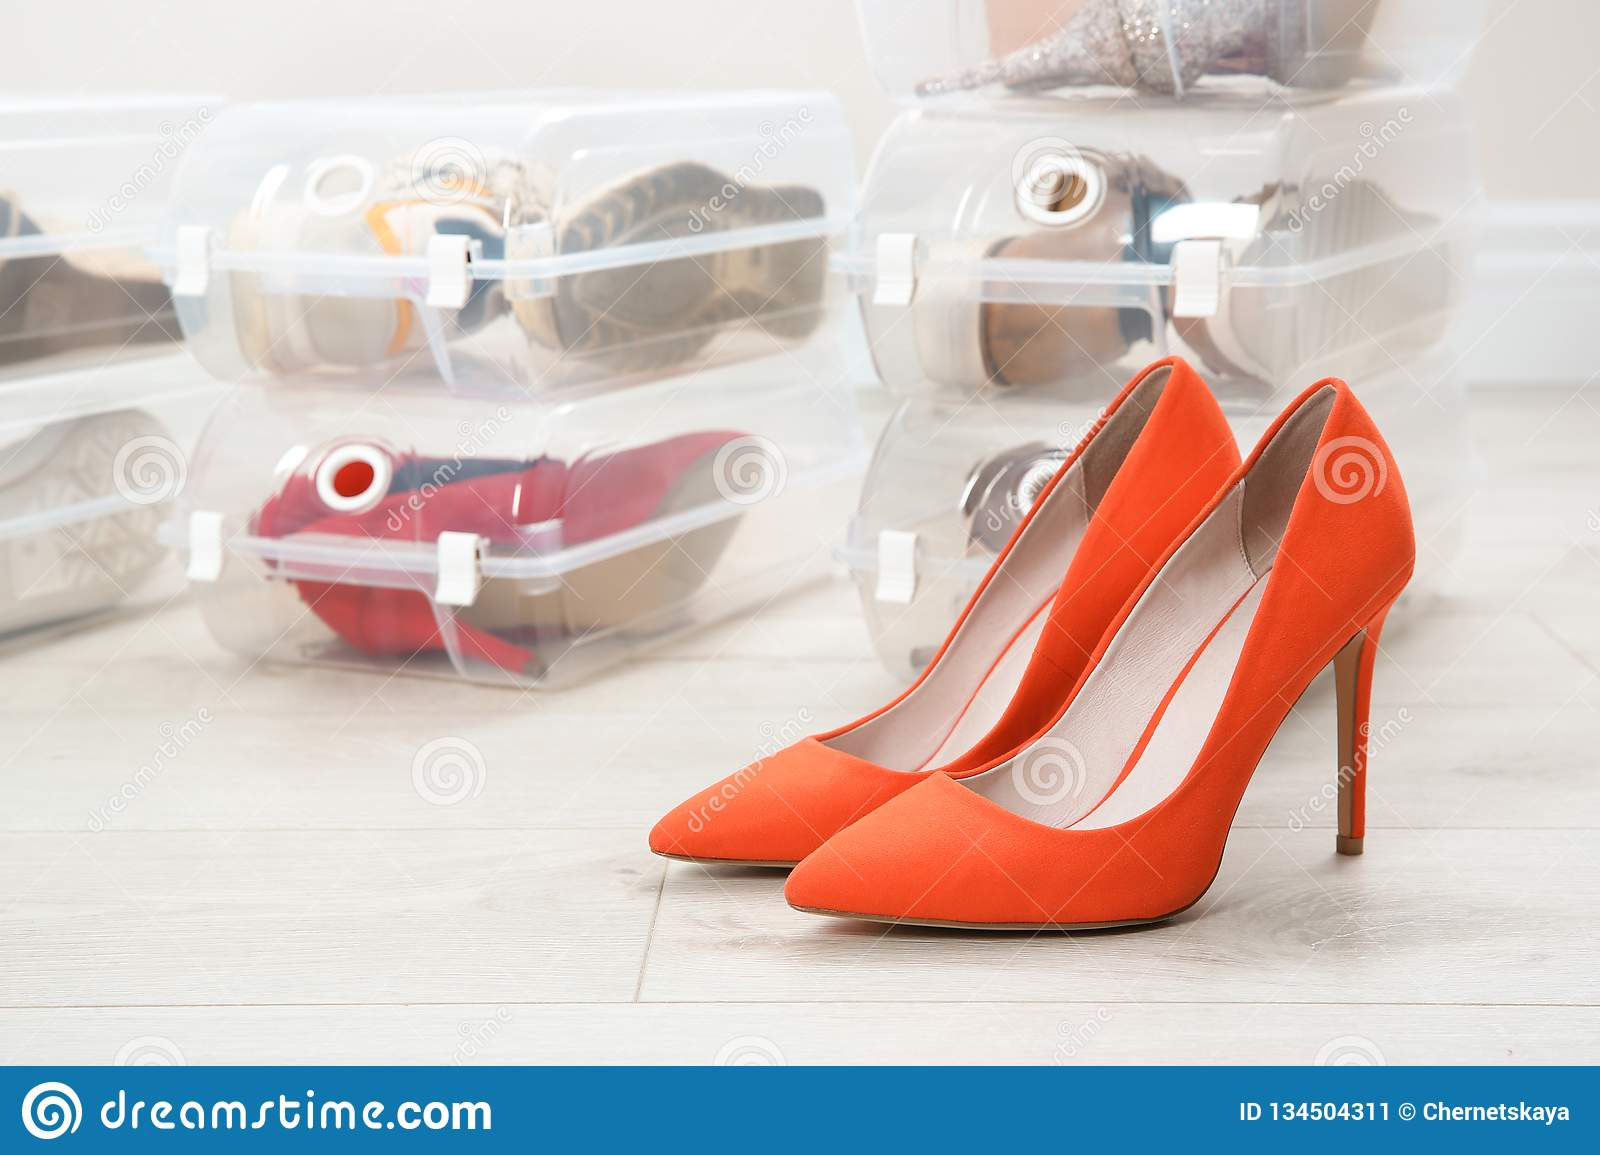 Pair of female shoes and other footwear in plastic boxes on floor